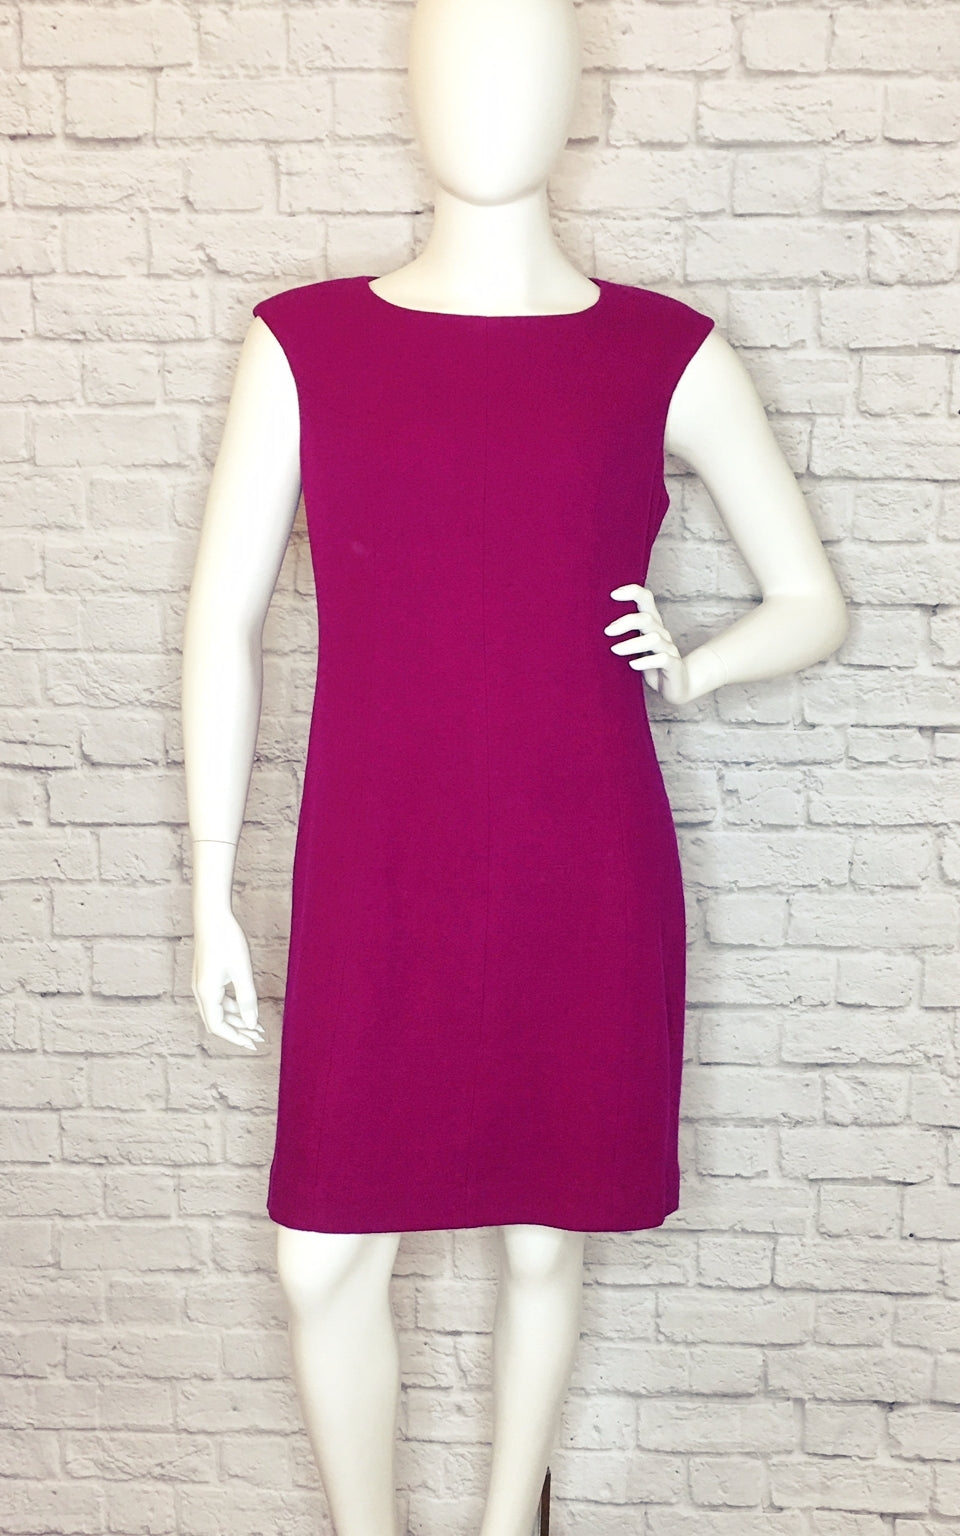 Kate Spade New York Crepe Cap-Sleeve Berry Blitz Mainline Sheath Dress